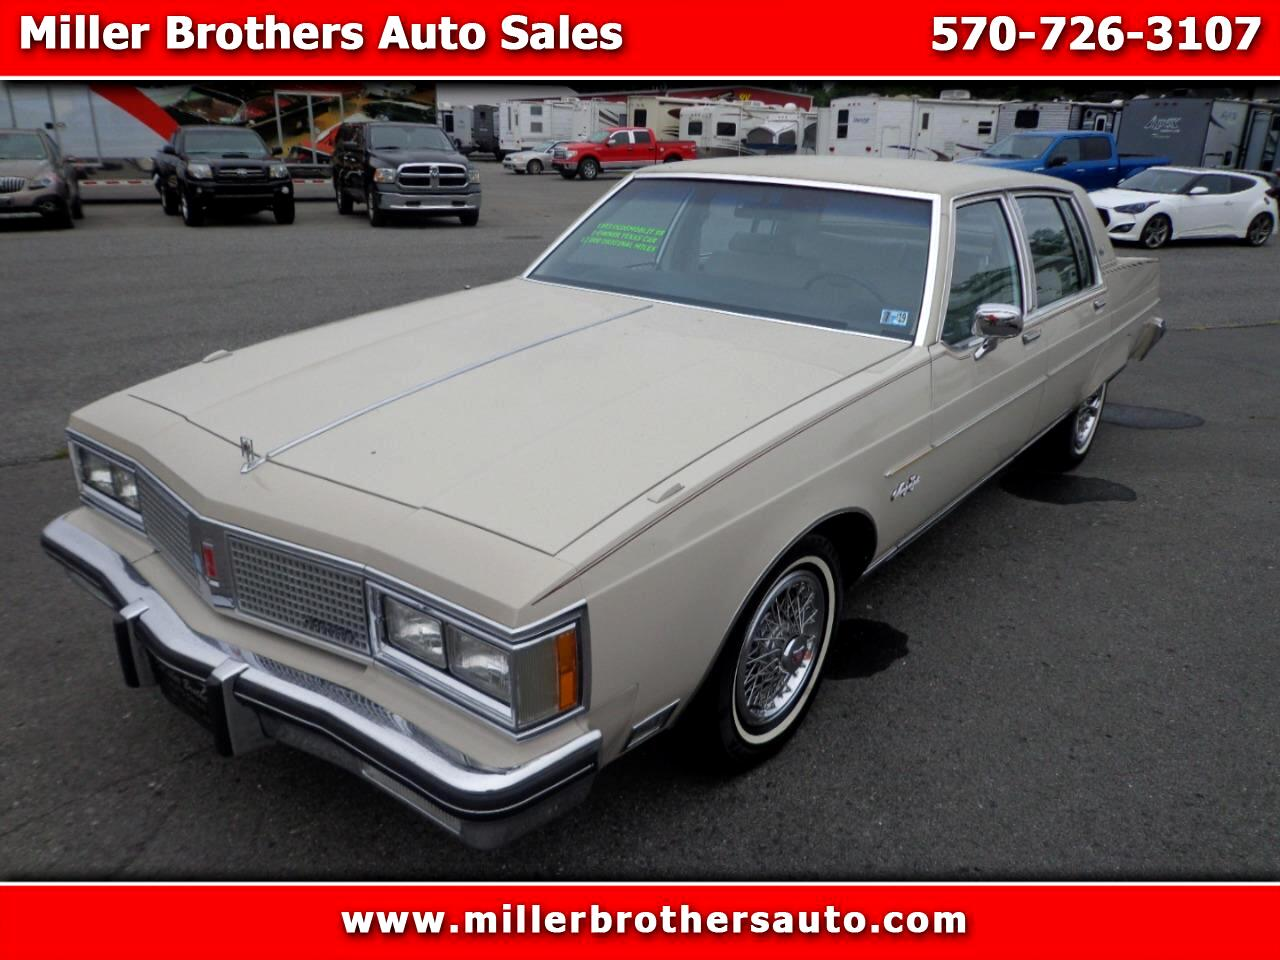 1983 Oldsmobile Ninety Eight Regency Brougham